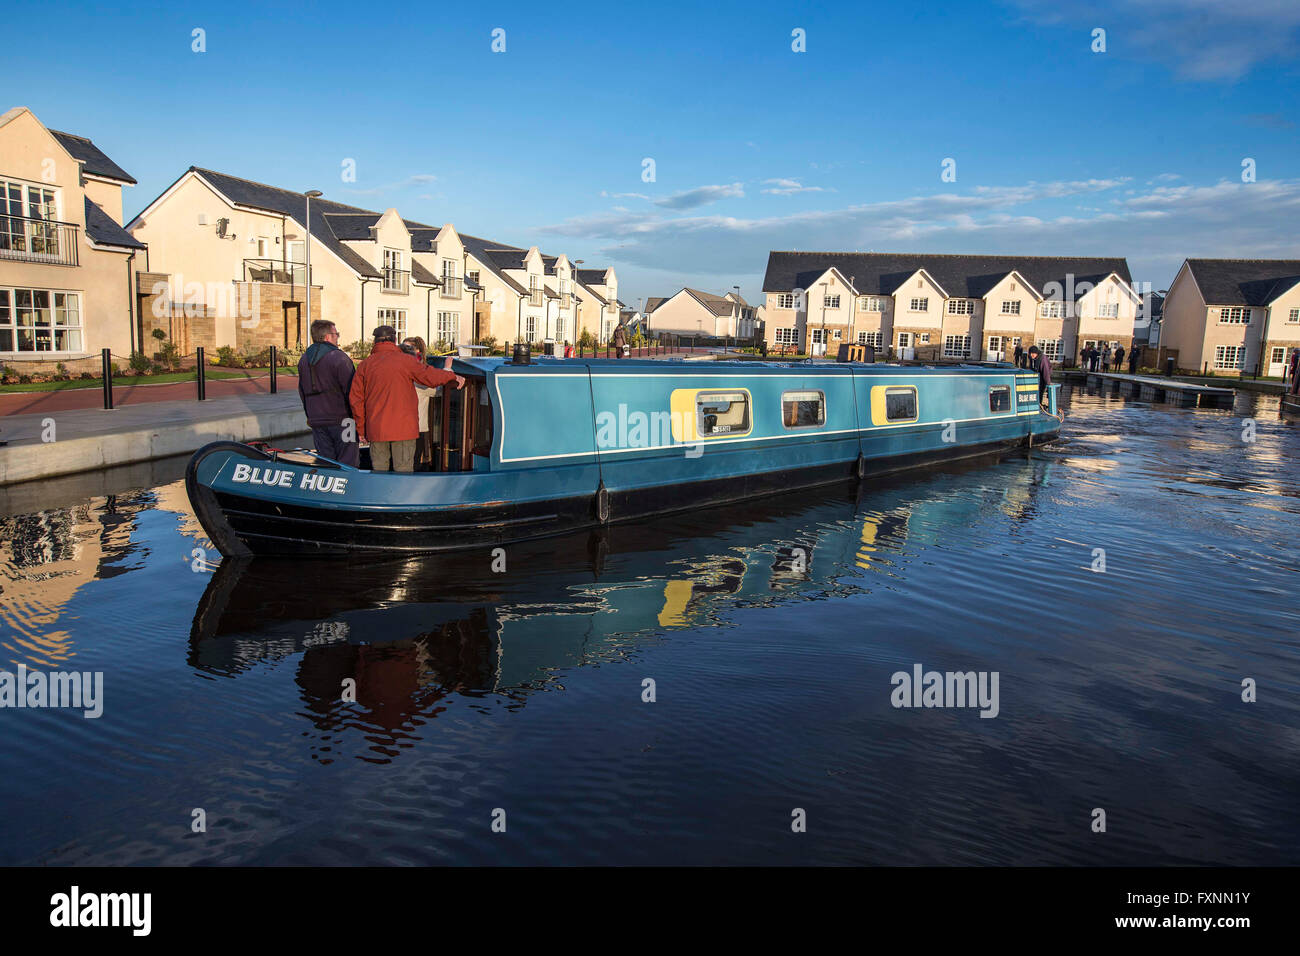 House boat entering basin with other houses reflected in water - Stock Image